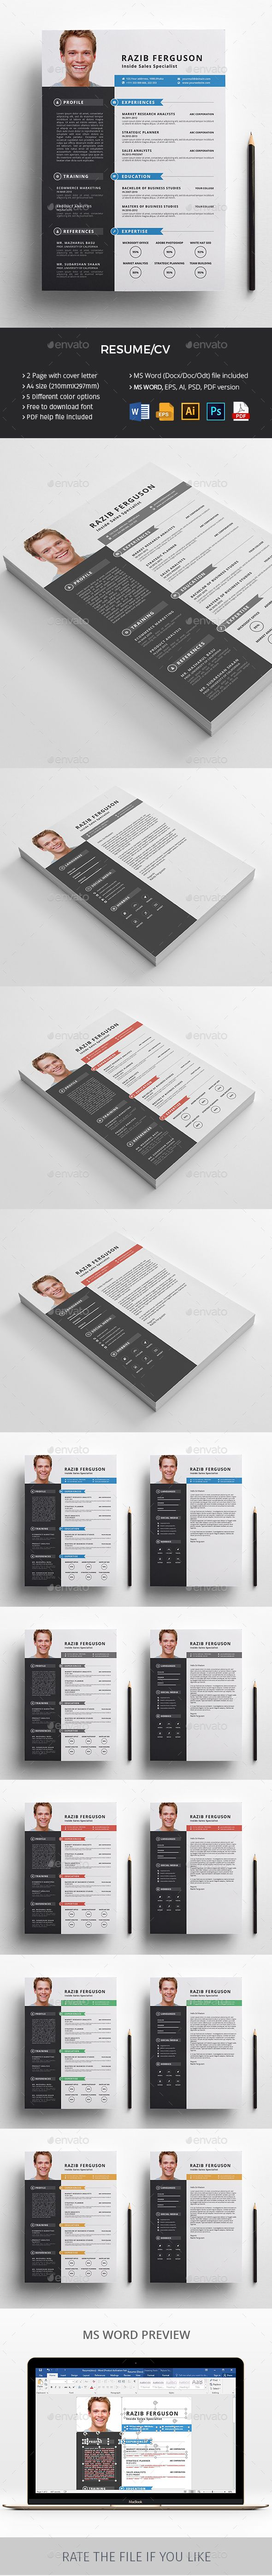 Resume Resume template design belongs MS WORD, AI, EPS, PSD, PDF versions. MS Word version also contains docx, doc, odt format. Which is easy to customize and 100% print ready. The design of Resume template is very much easy to edit. We also have added a userguide in downloaded file for how you can edit the deign in various format.